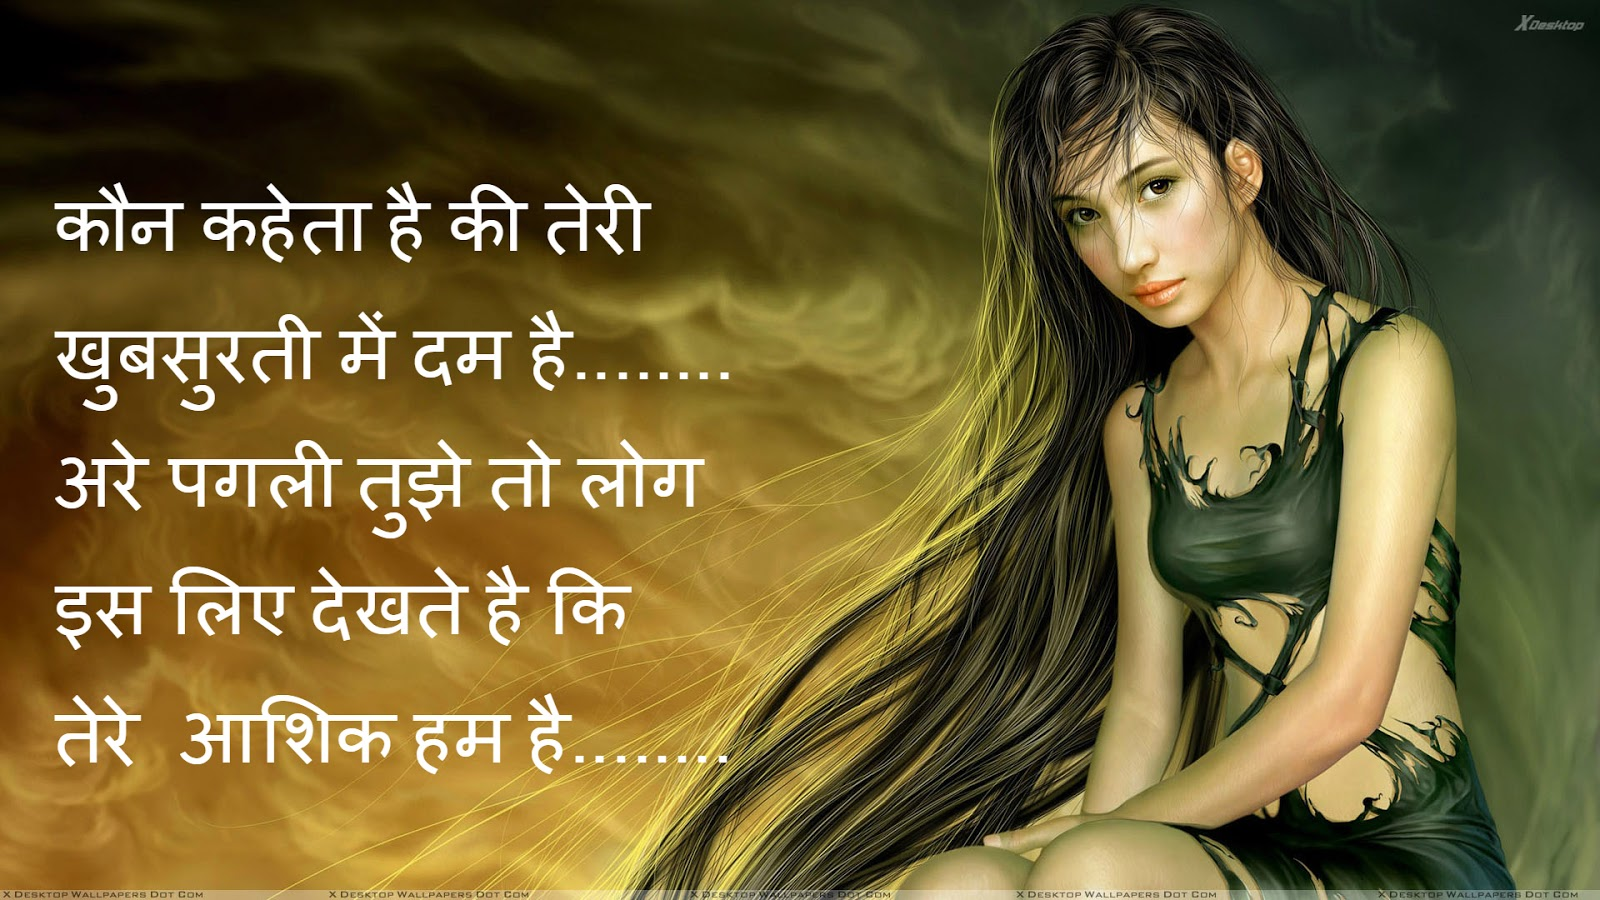 Wallpaper download love shayri - Wallpaper Download Love Shayri Love Shayari Wallpaper In Hindi